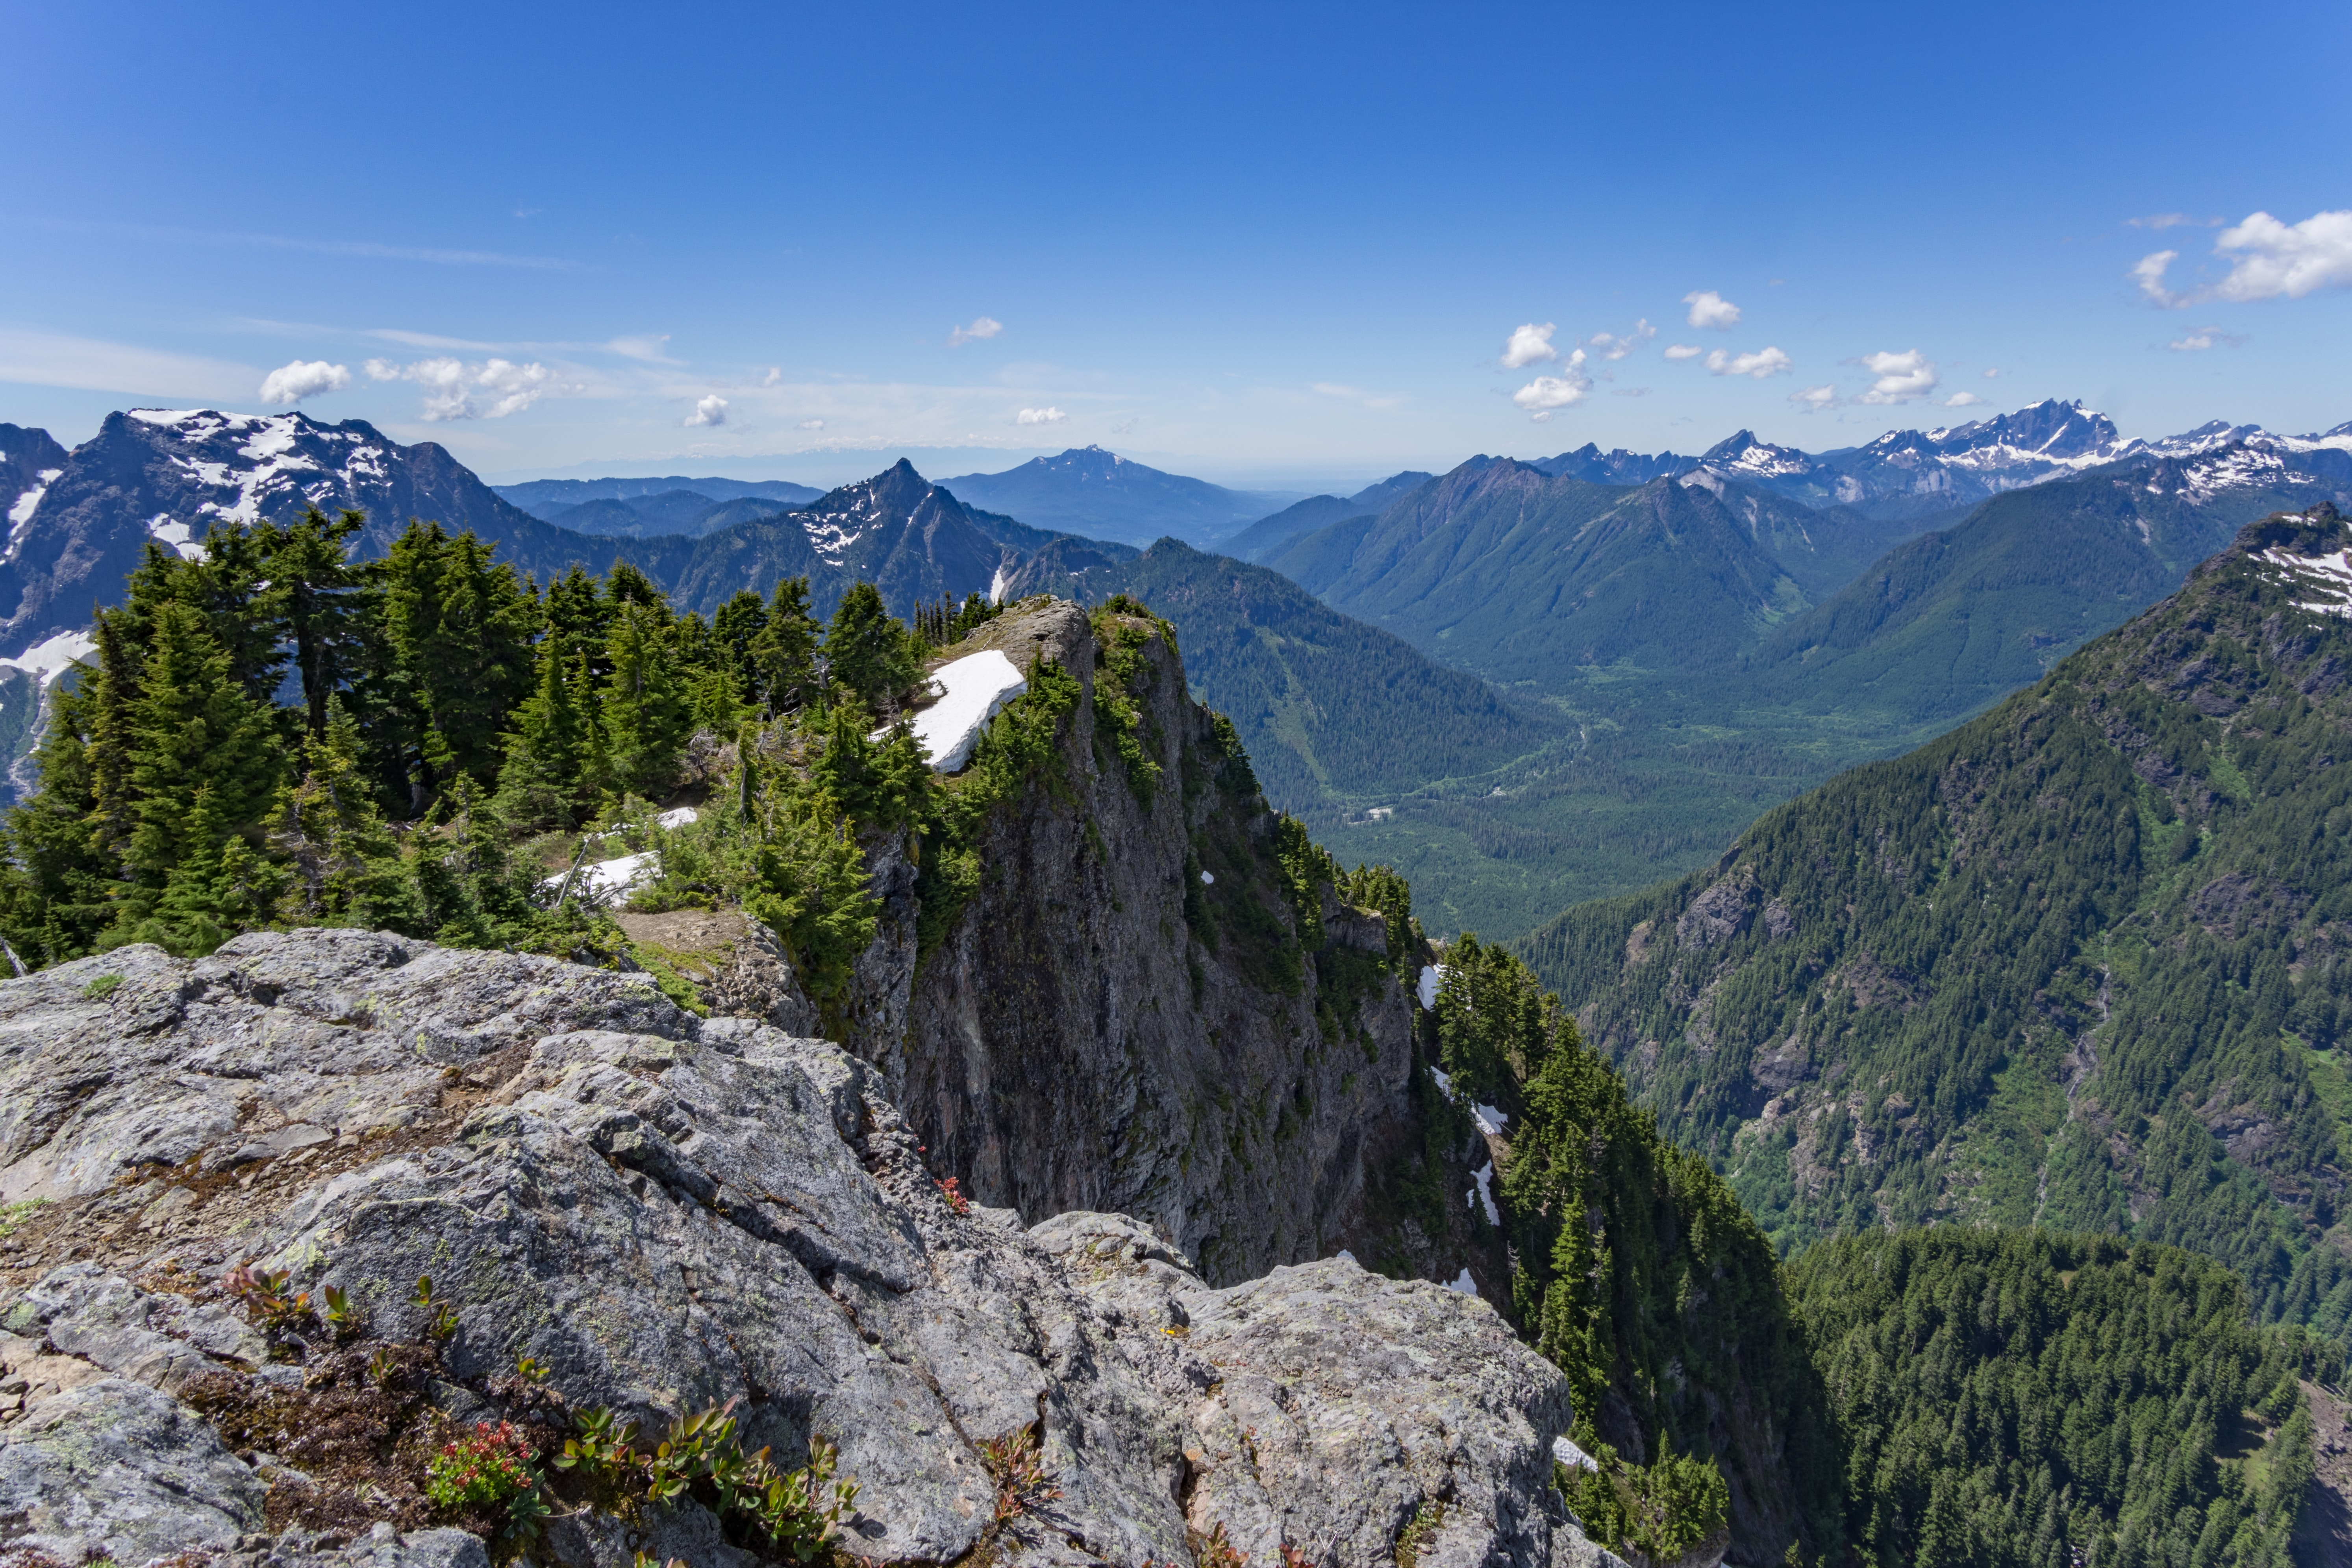 The peak of Mount Dickermann with a valley surrounded by mountains in the background